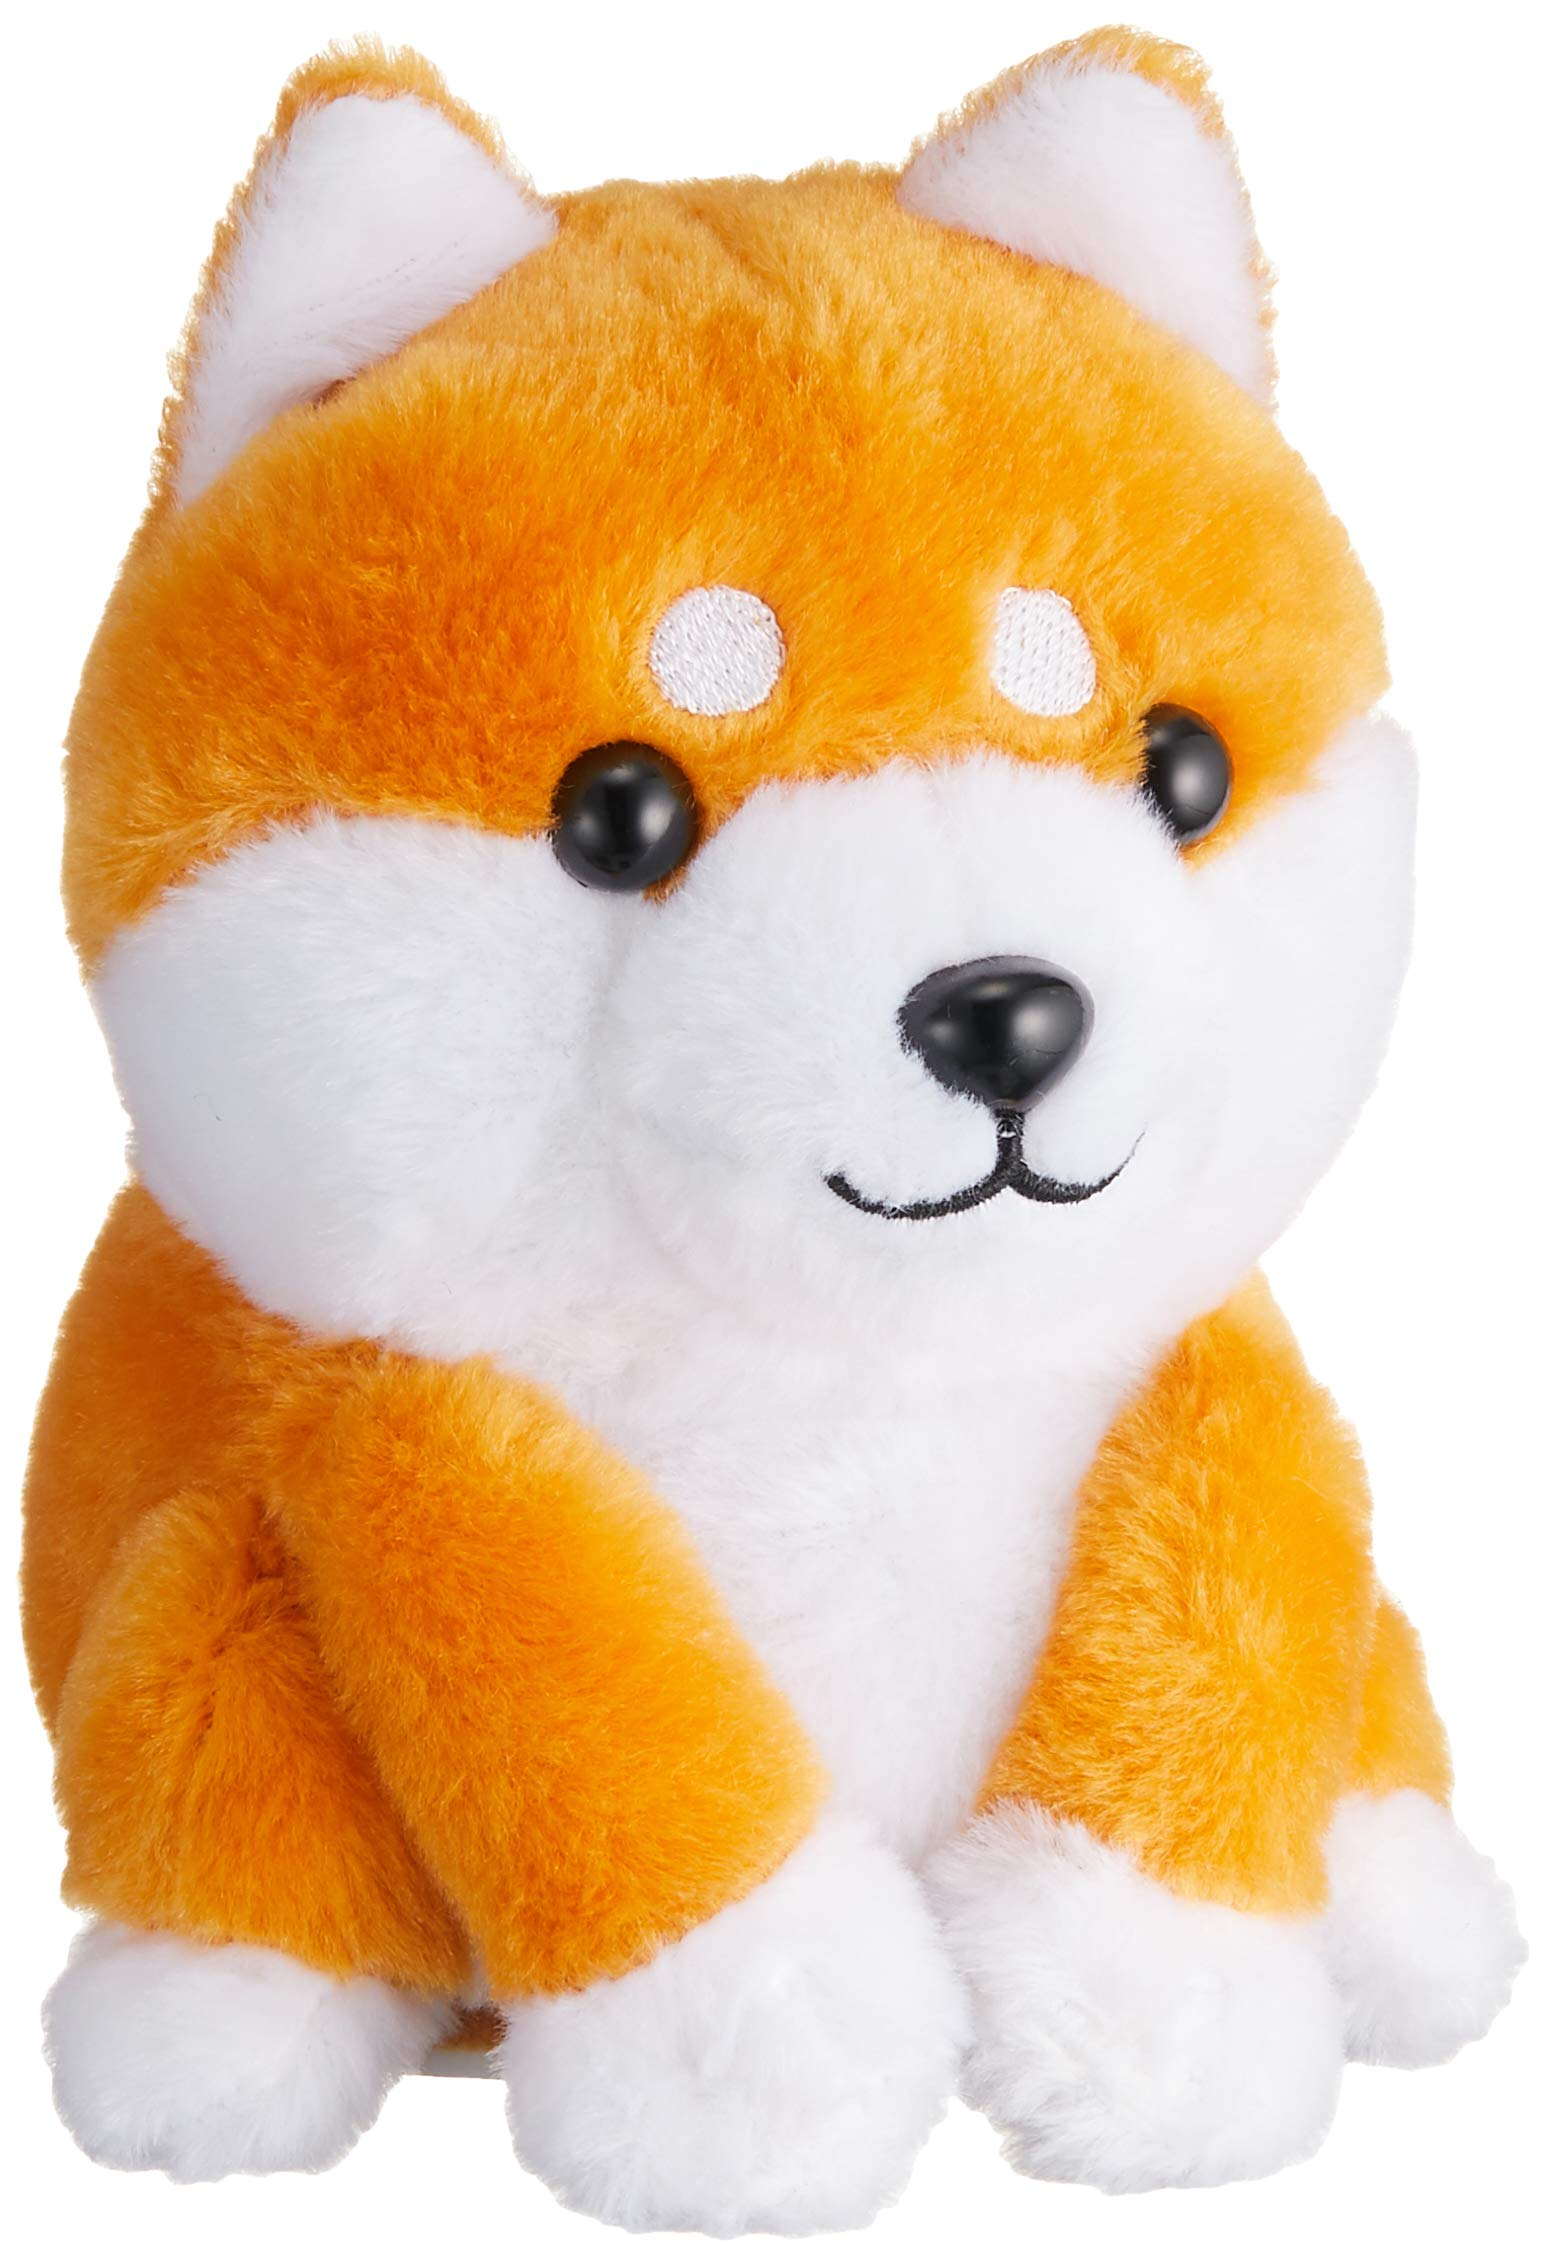 Ost Mimicry Pet Talking Toy Series Mame Shiba Inu by OTS (Image #1)